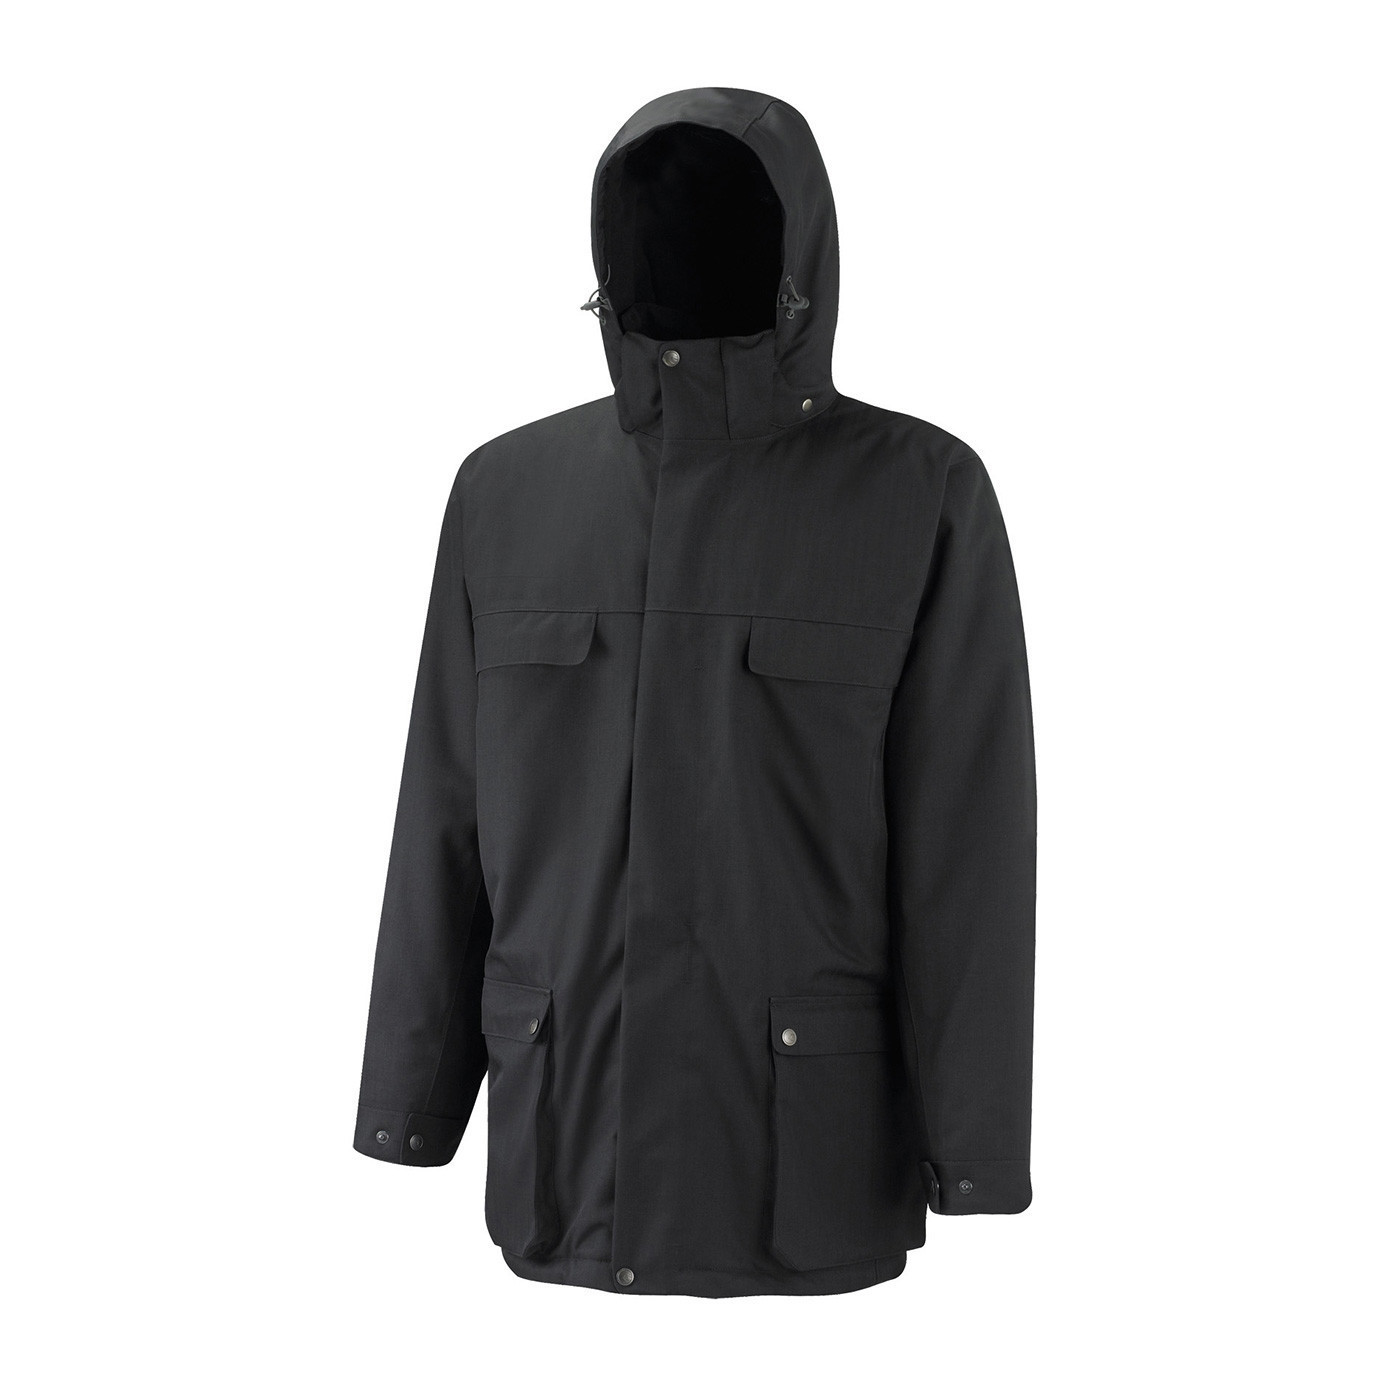 SPRAYWAU QUORUM GORETEX INSULATED JACKET BLACK MEDIUM